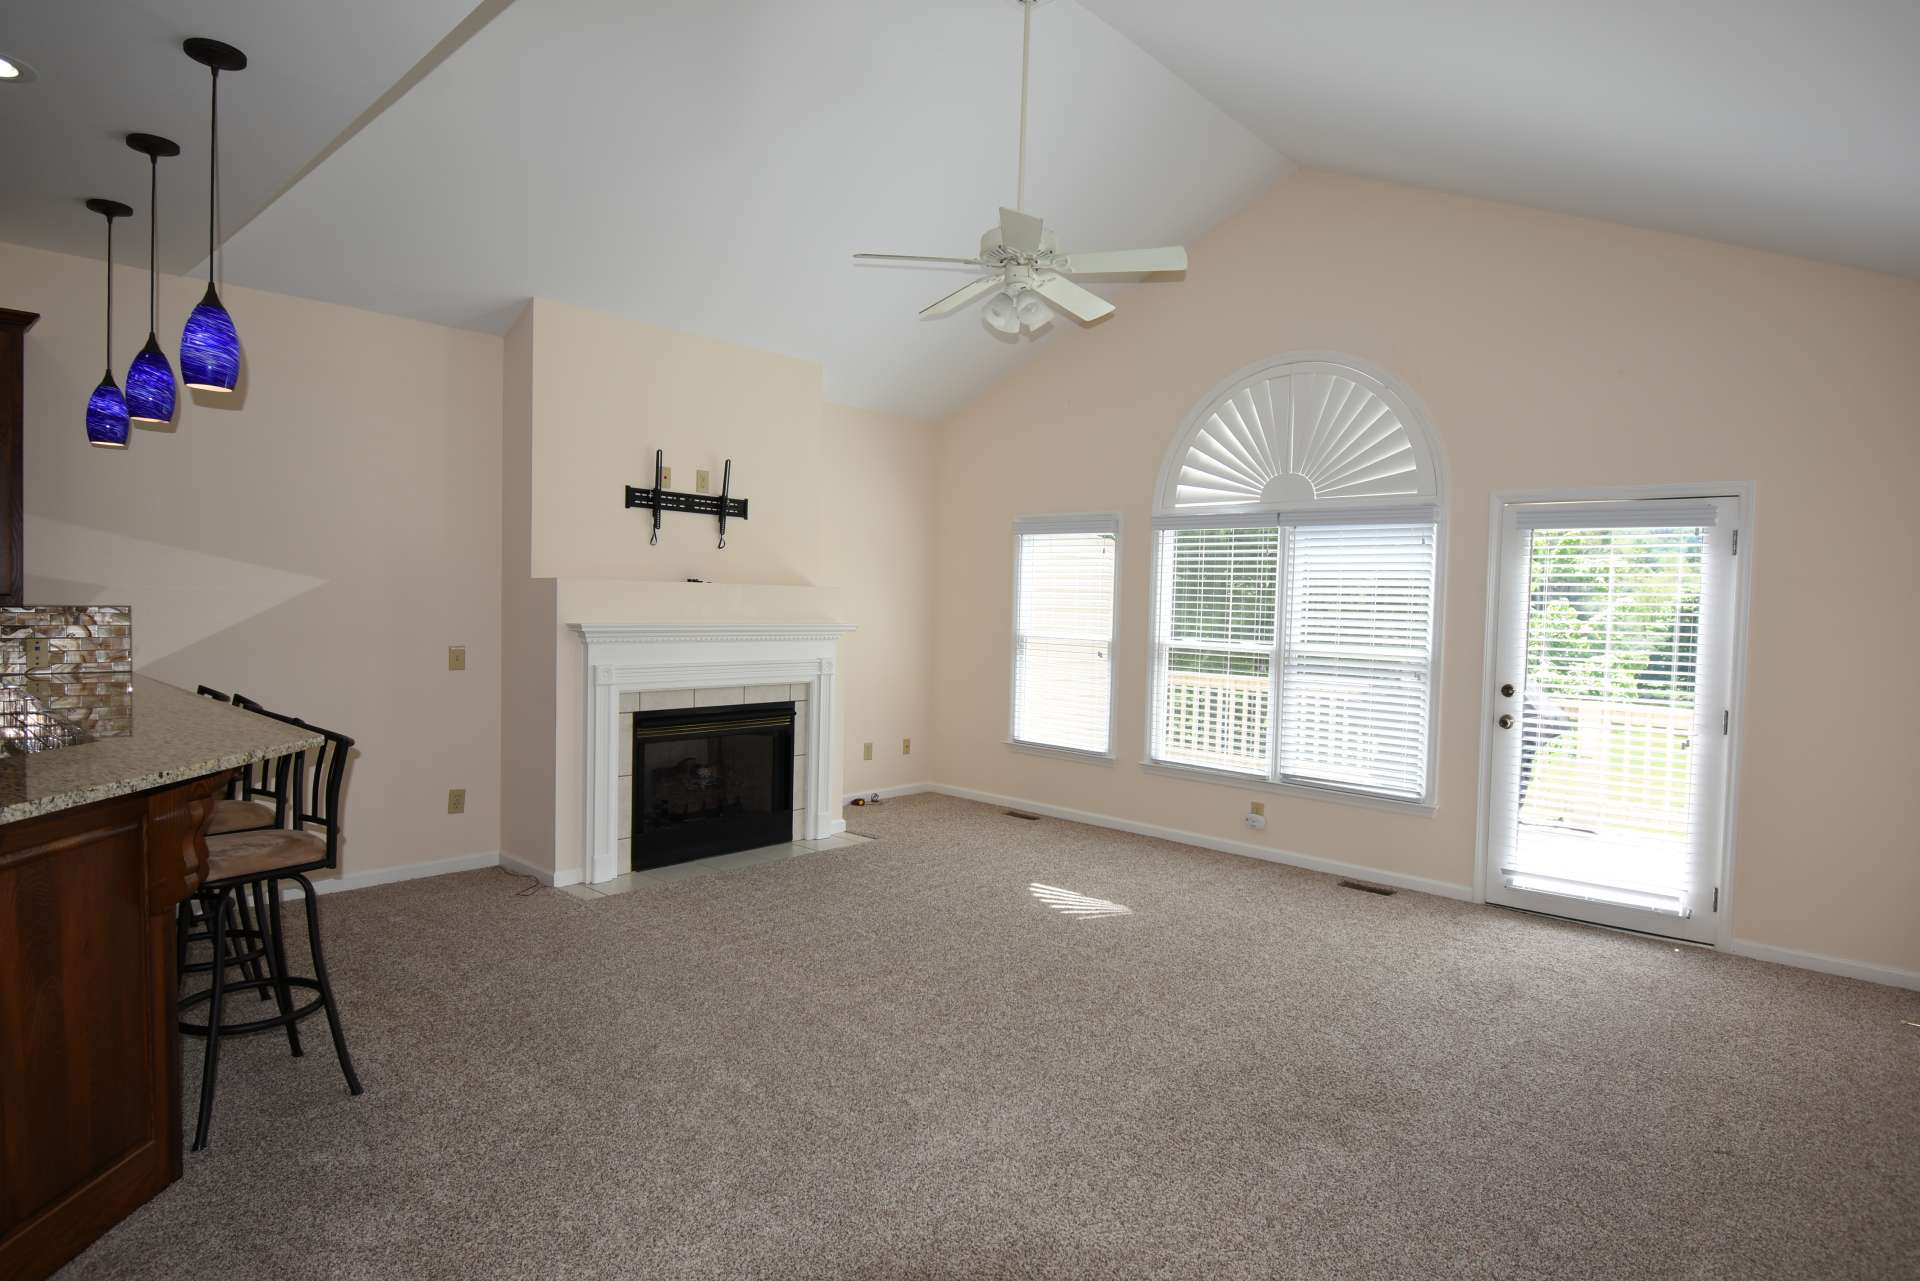 The open floor plan includes a vaulted great room with lots of windows to fill the space with natural light, a cozy gas log fireplace and comfortable carpeted floors to warm up those cool winter evenings in the mountains.